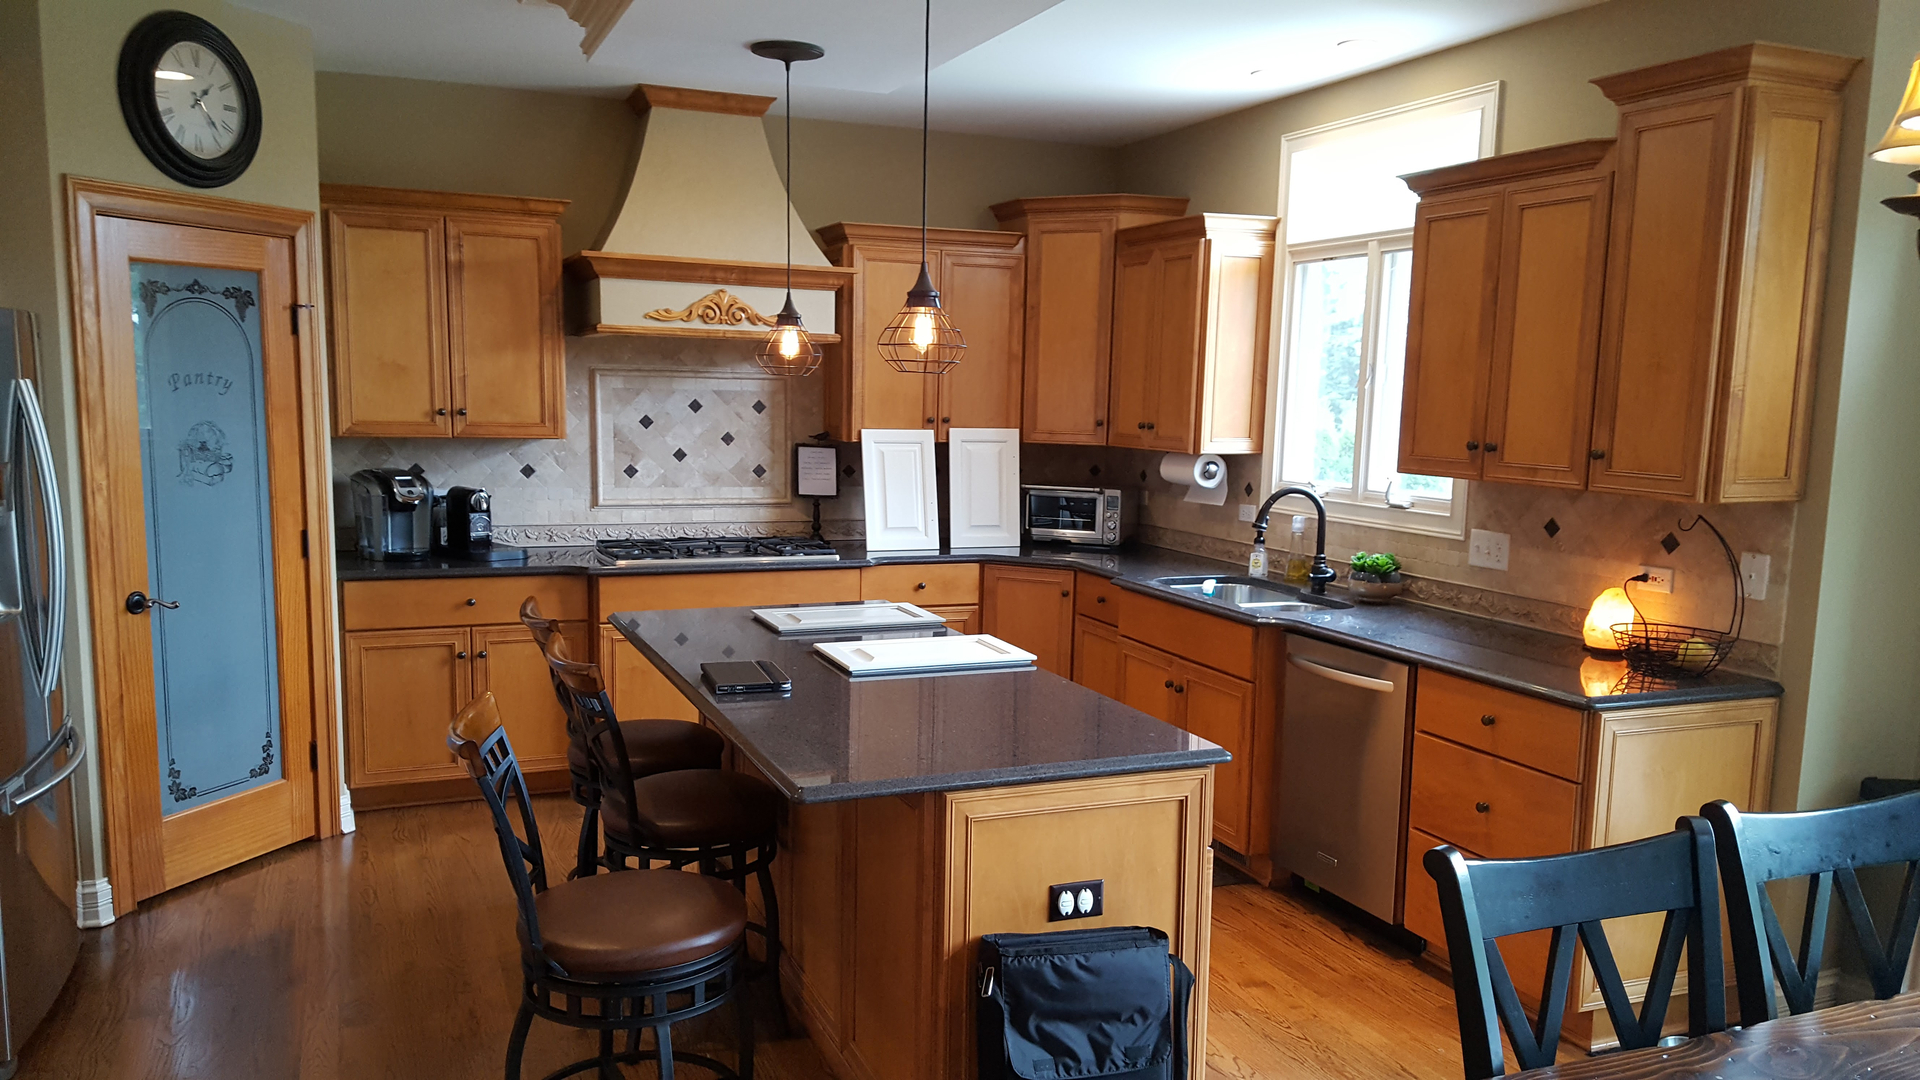 Kitchen cabinets in south elgin il - Kammes Colorworks Inc South Elgin Il Cabinet Refinishing And Painting